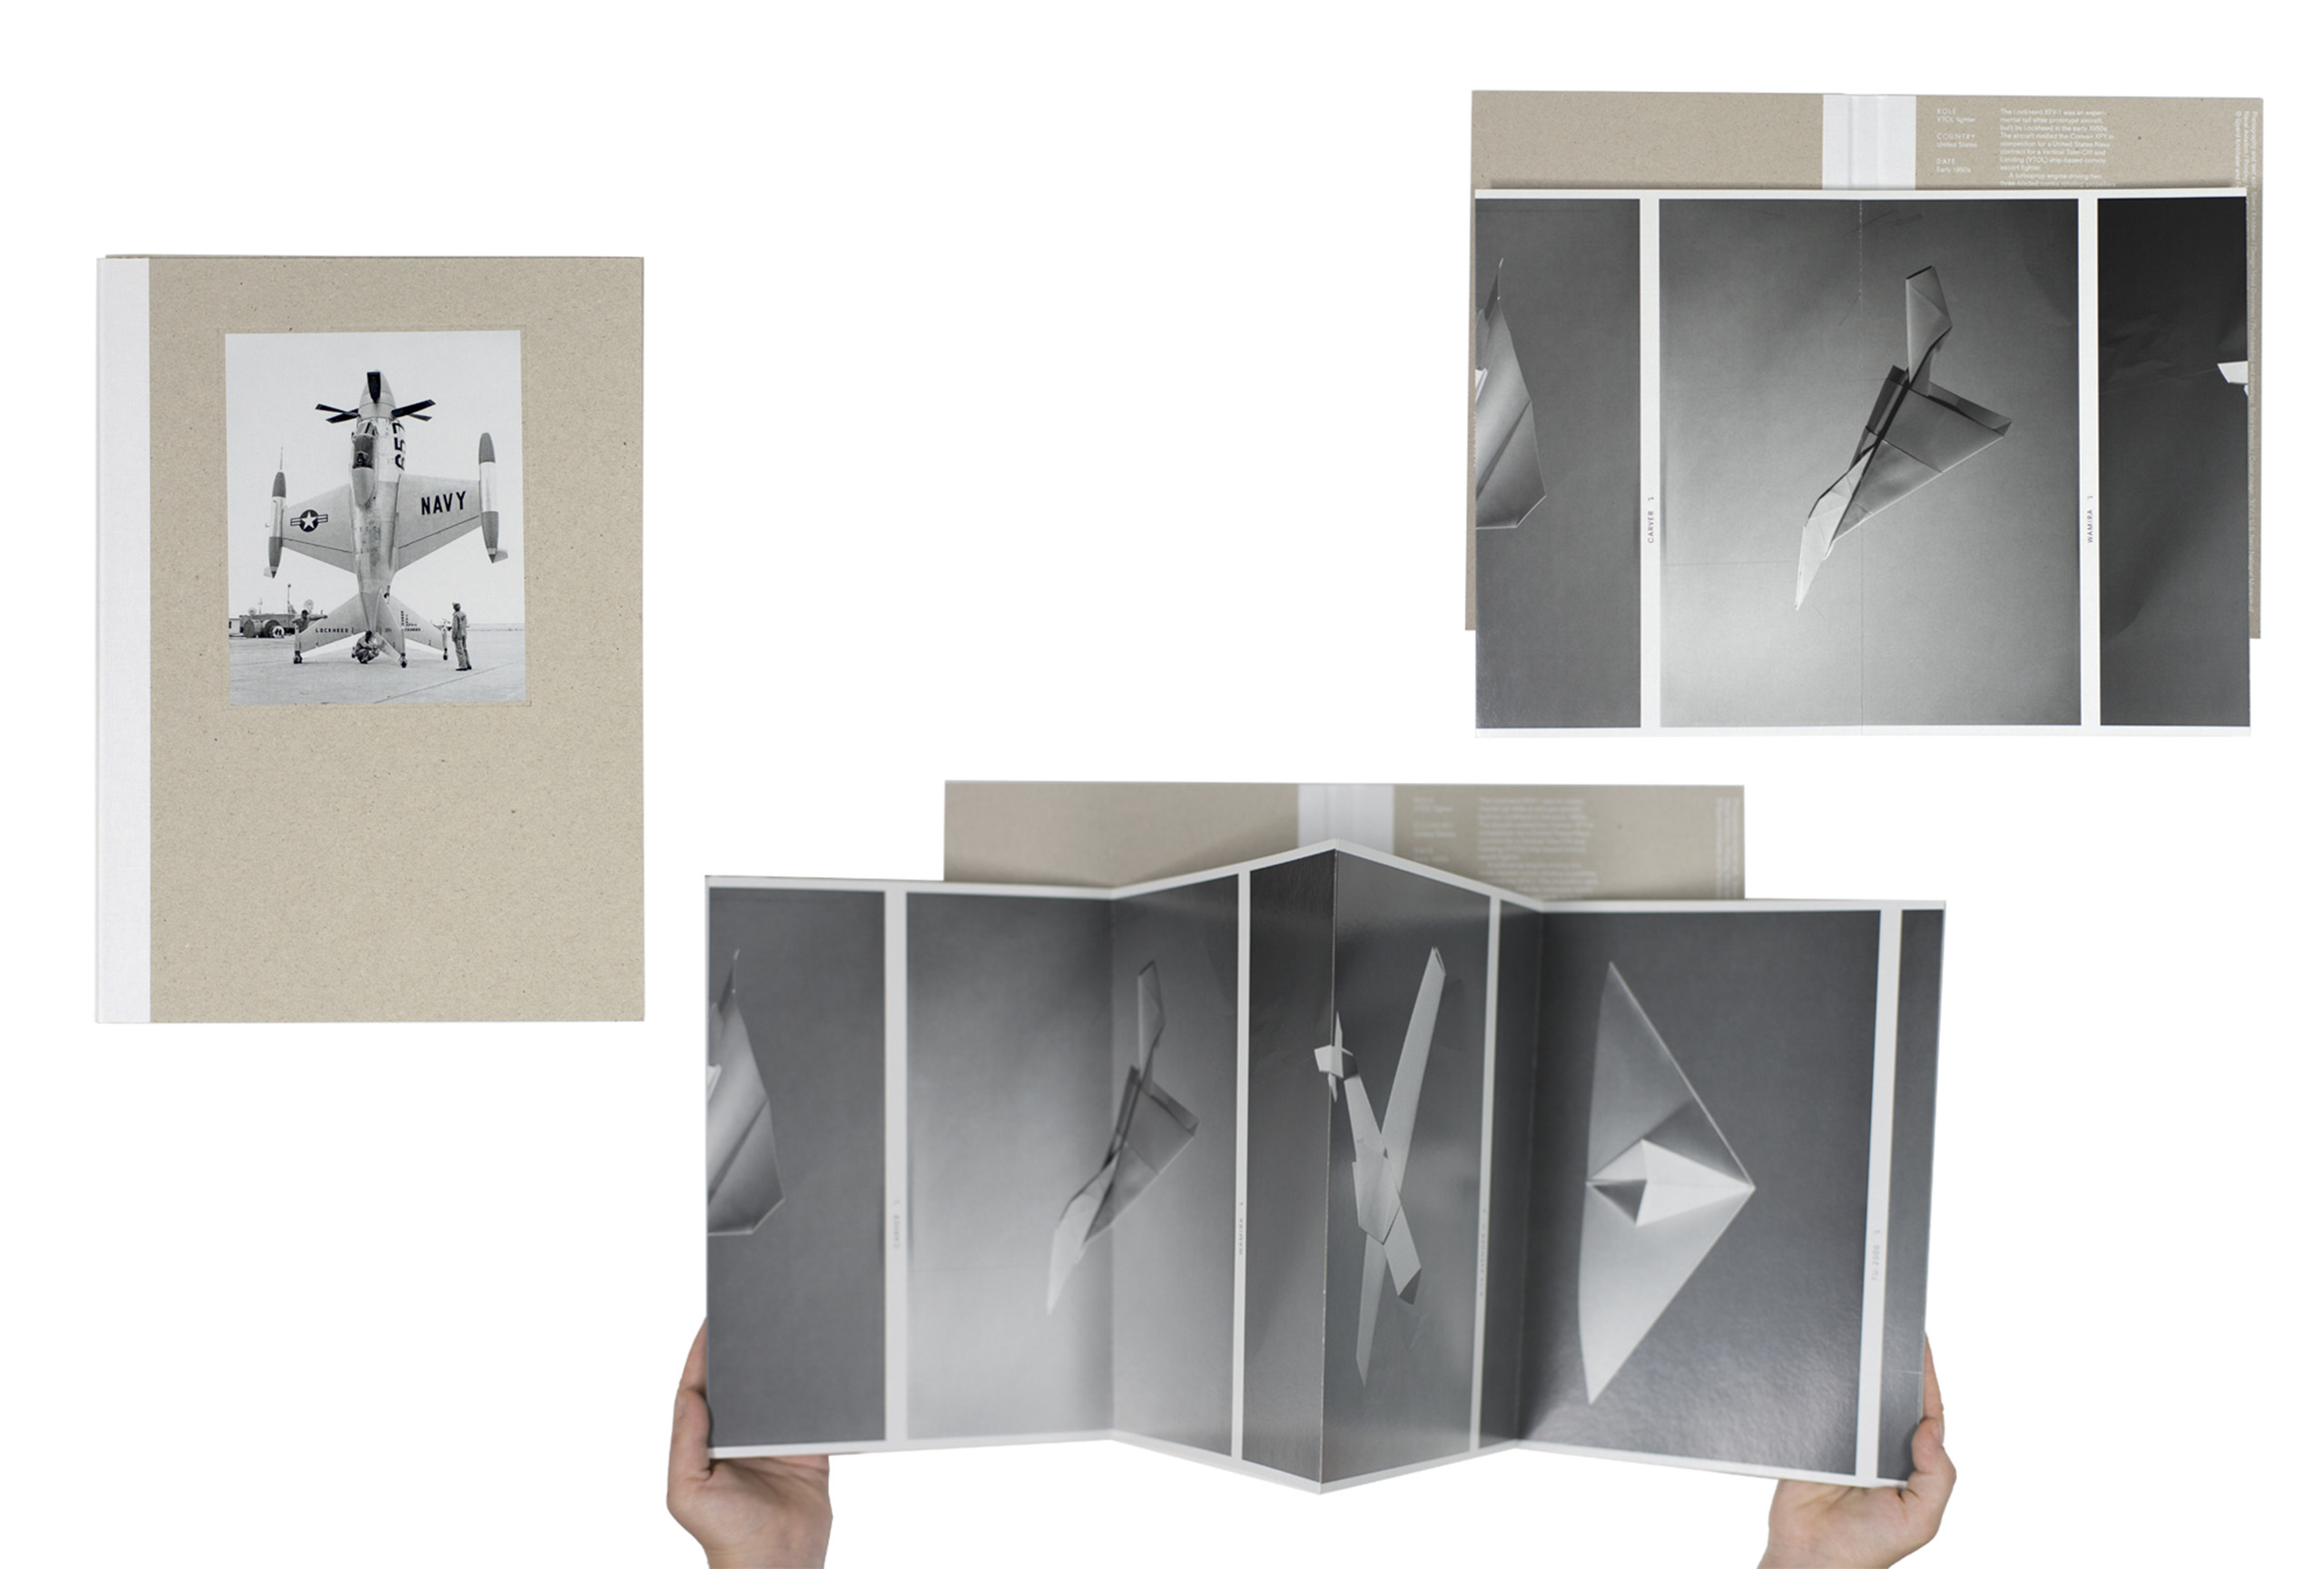 Paper Planes by Sjoerd Knibbeler, published by Fw:Books. Short-listed title for First PhotoBook.